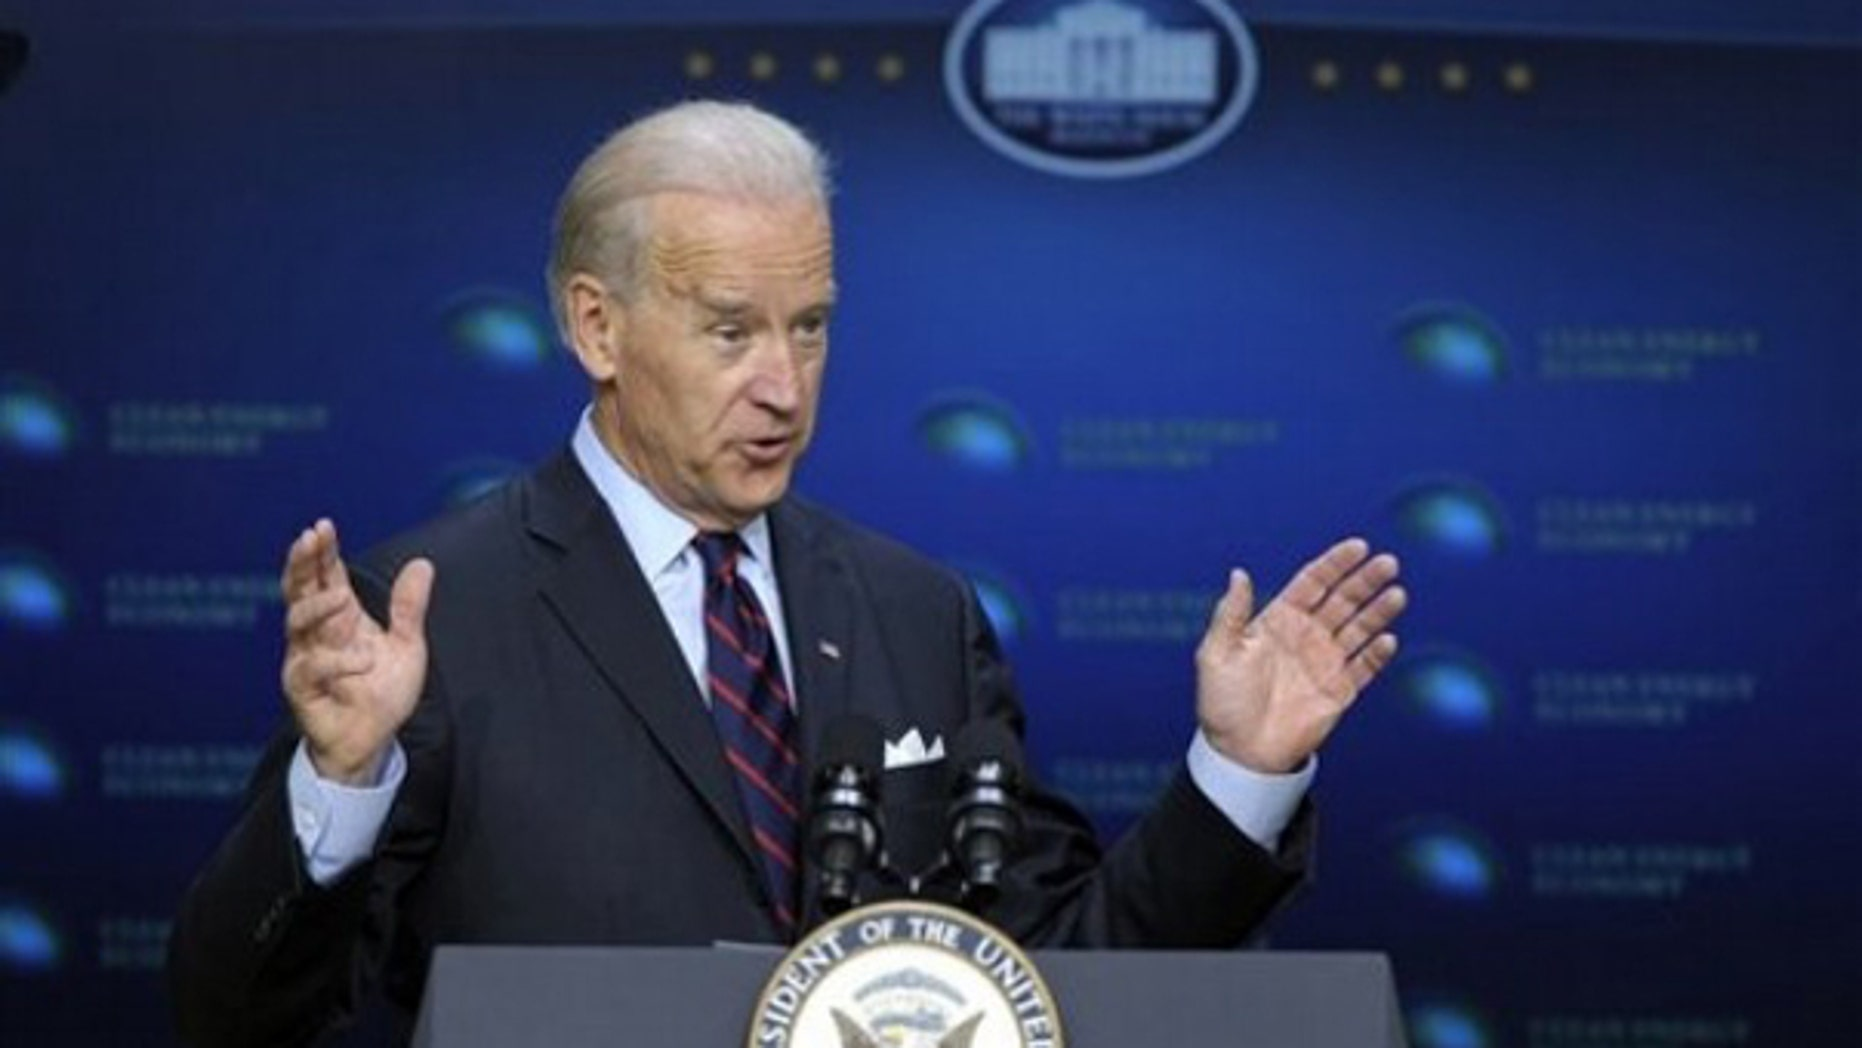 Vice President Biden speaks in Washington April 21. (AP Photo)